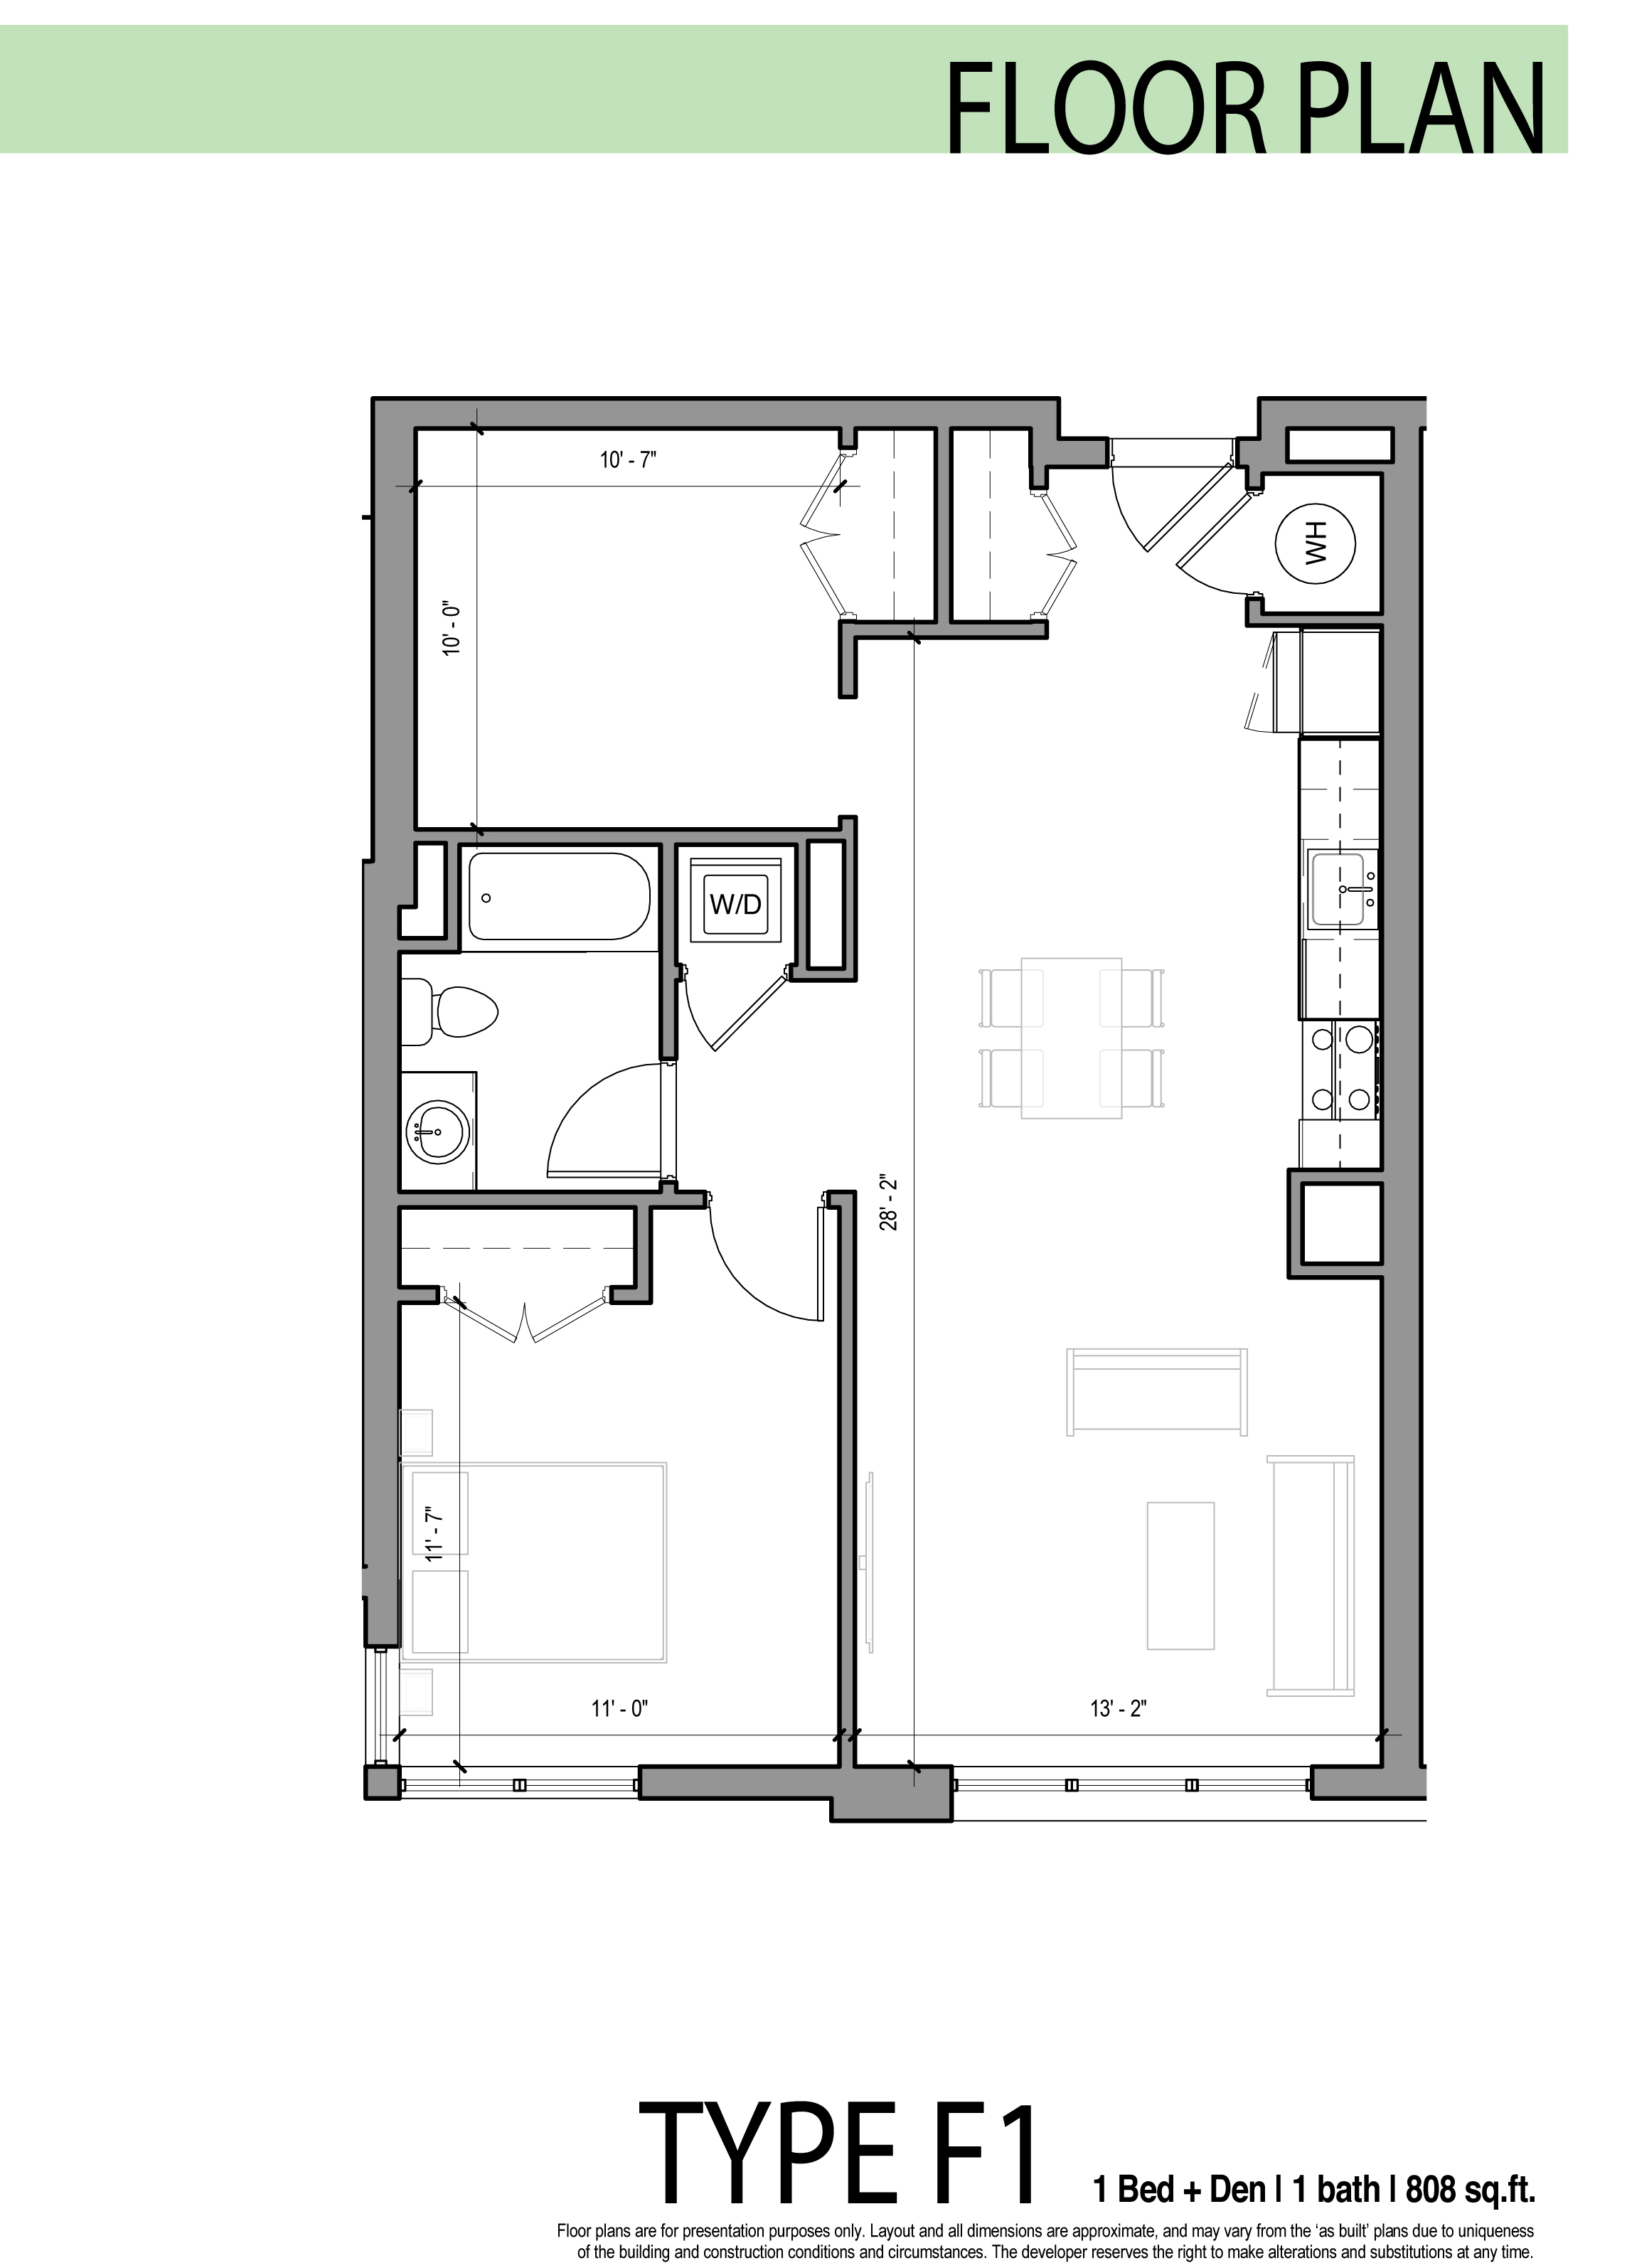 Edge allston floor plans for One bedroom apartment designs plans